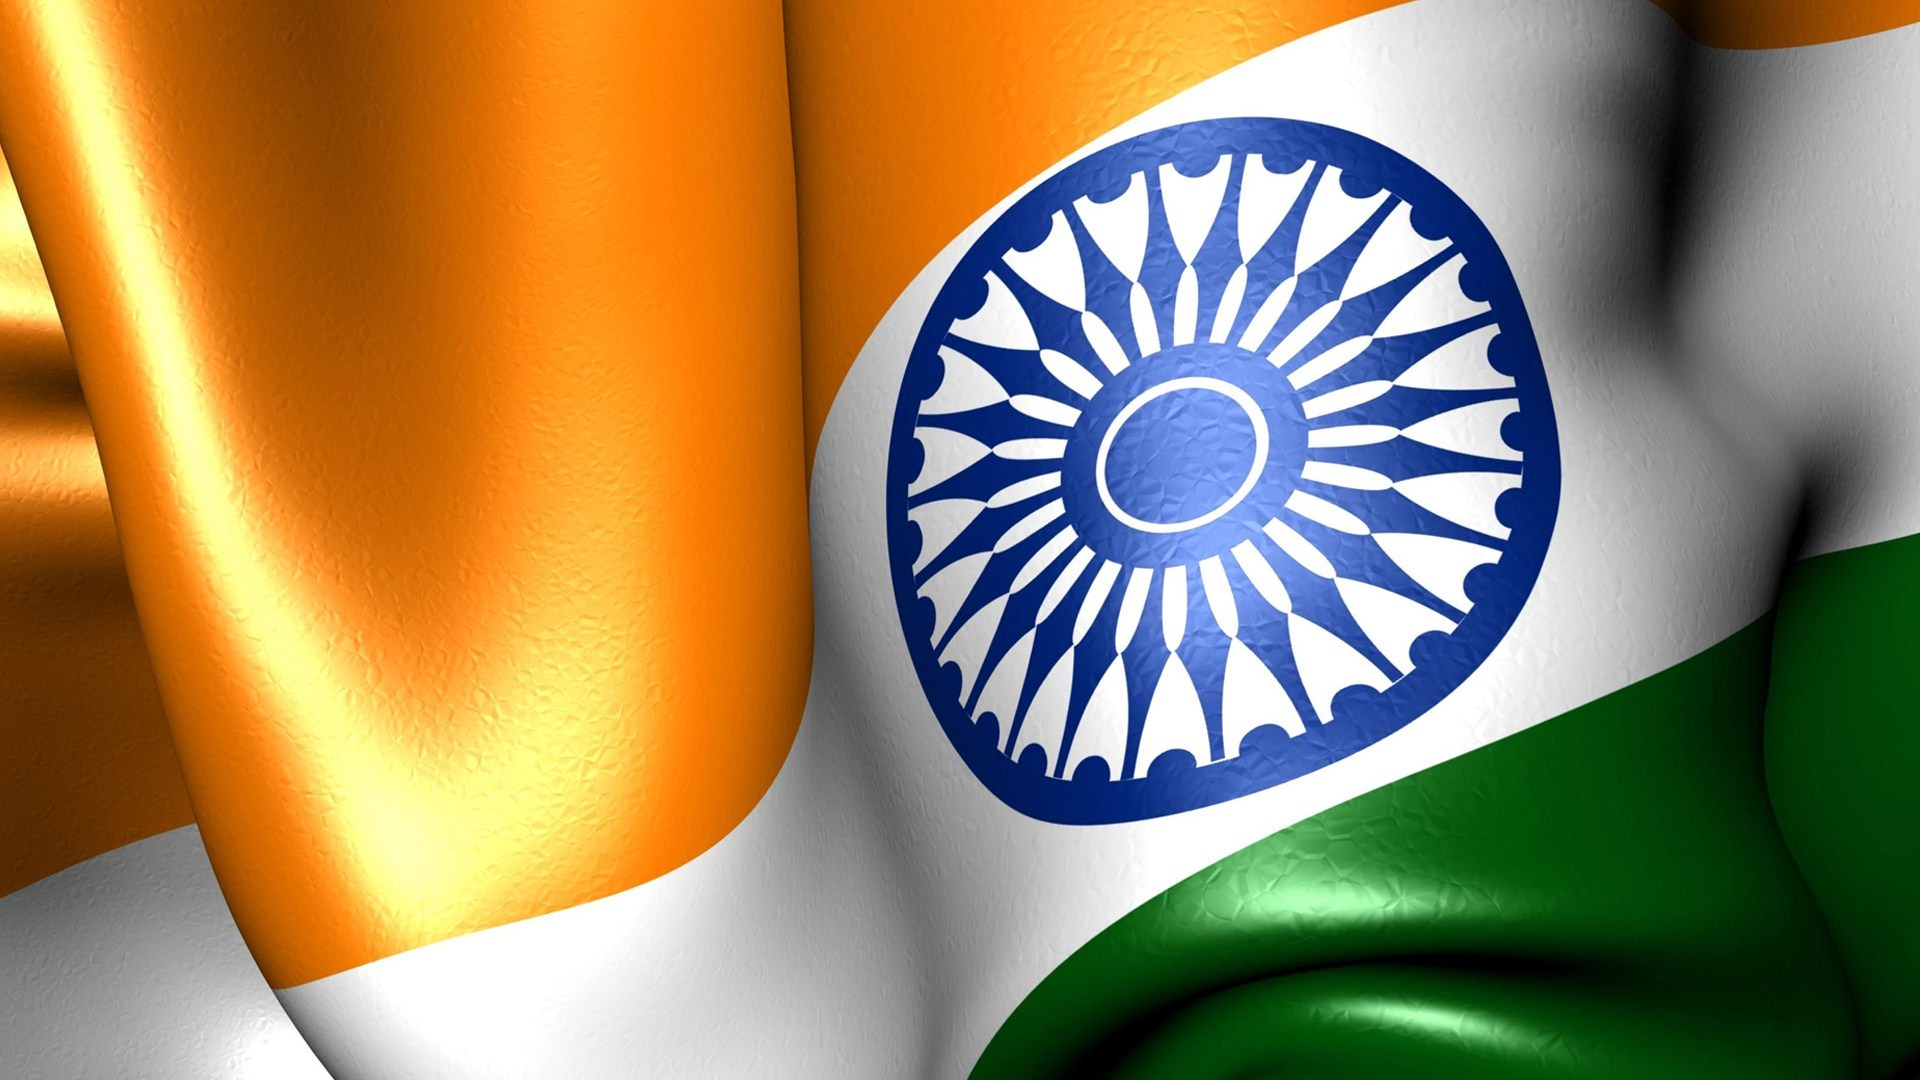 Indian Flag 4k Wallpaper: Indian Flag HD Images Wallpapers Free Download